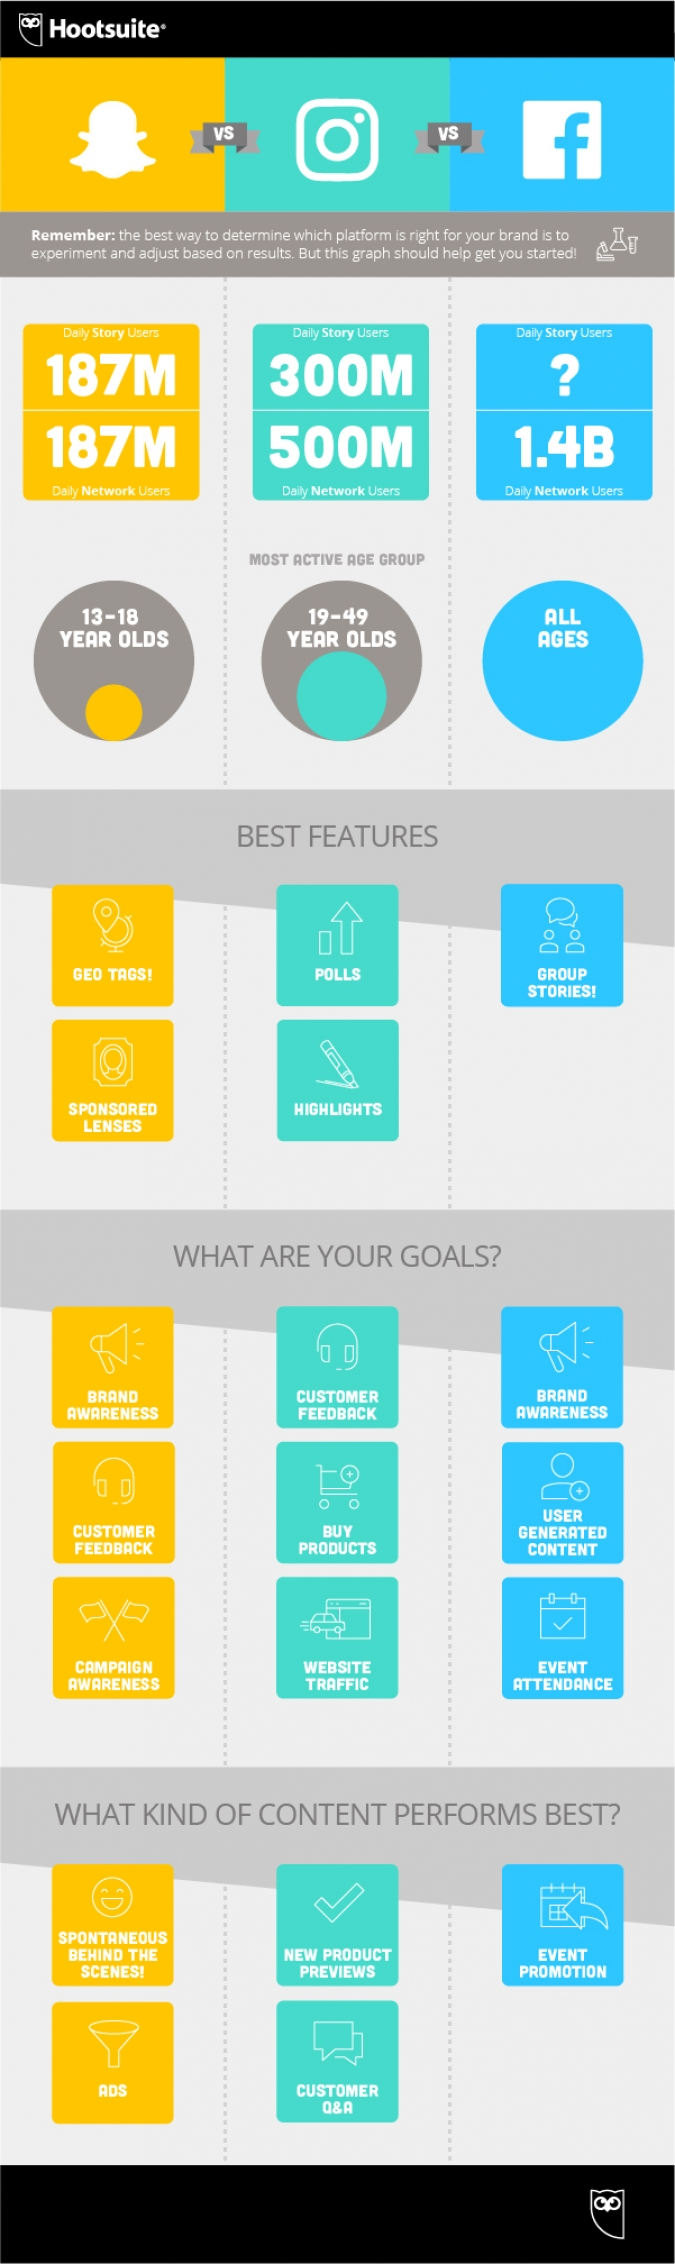 Stories auf Snapchat, Facebook und Instagram – Welches Story Format eignet sich für eure Marke? [Infografik] content marketing content strategie blogstories